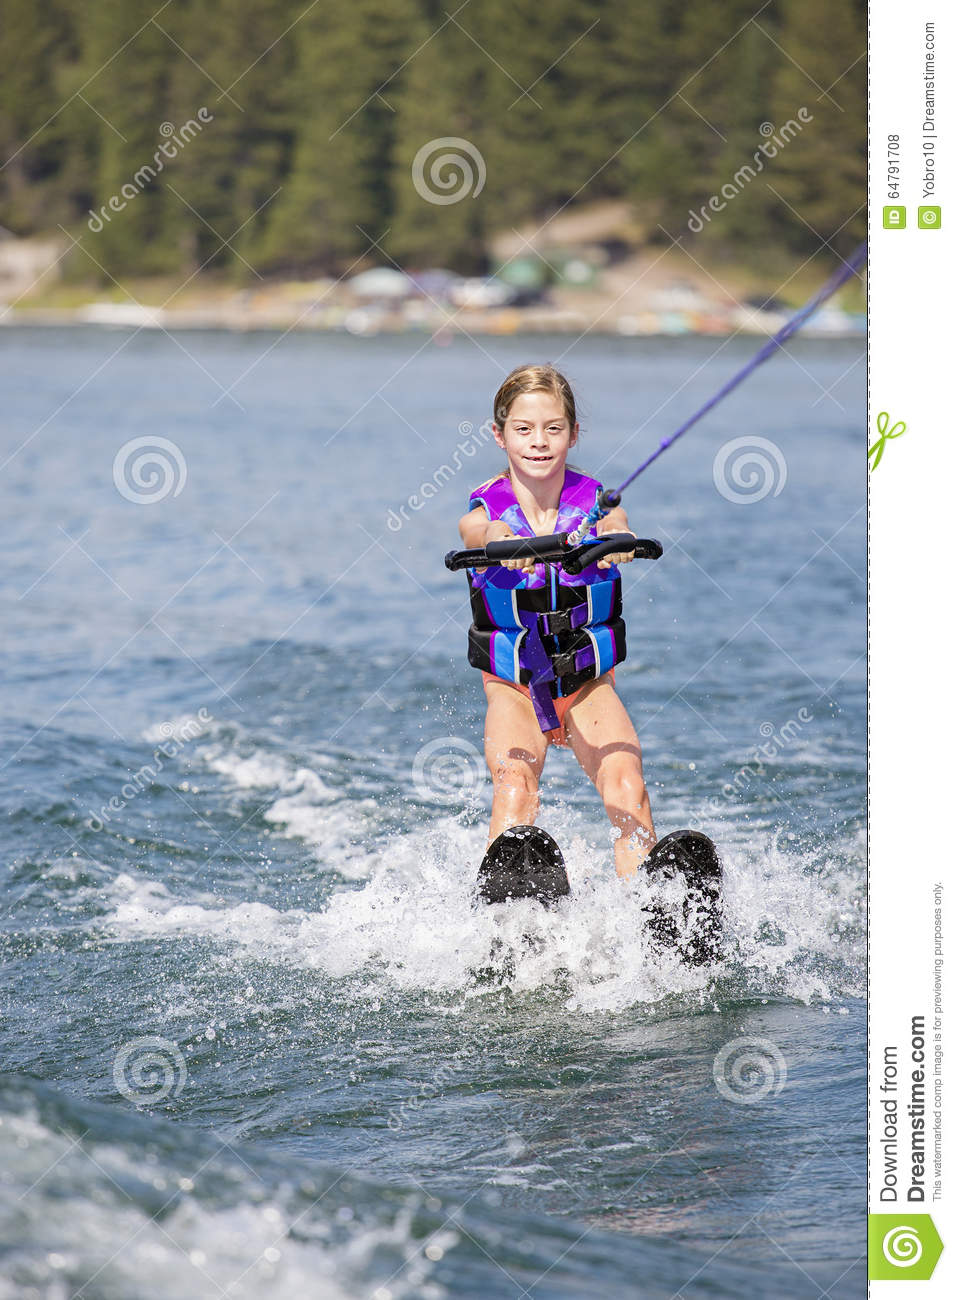 Young Waterskier on a beautiful scenic lake